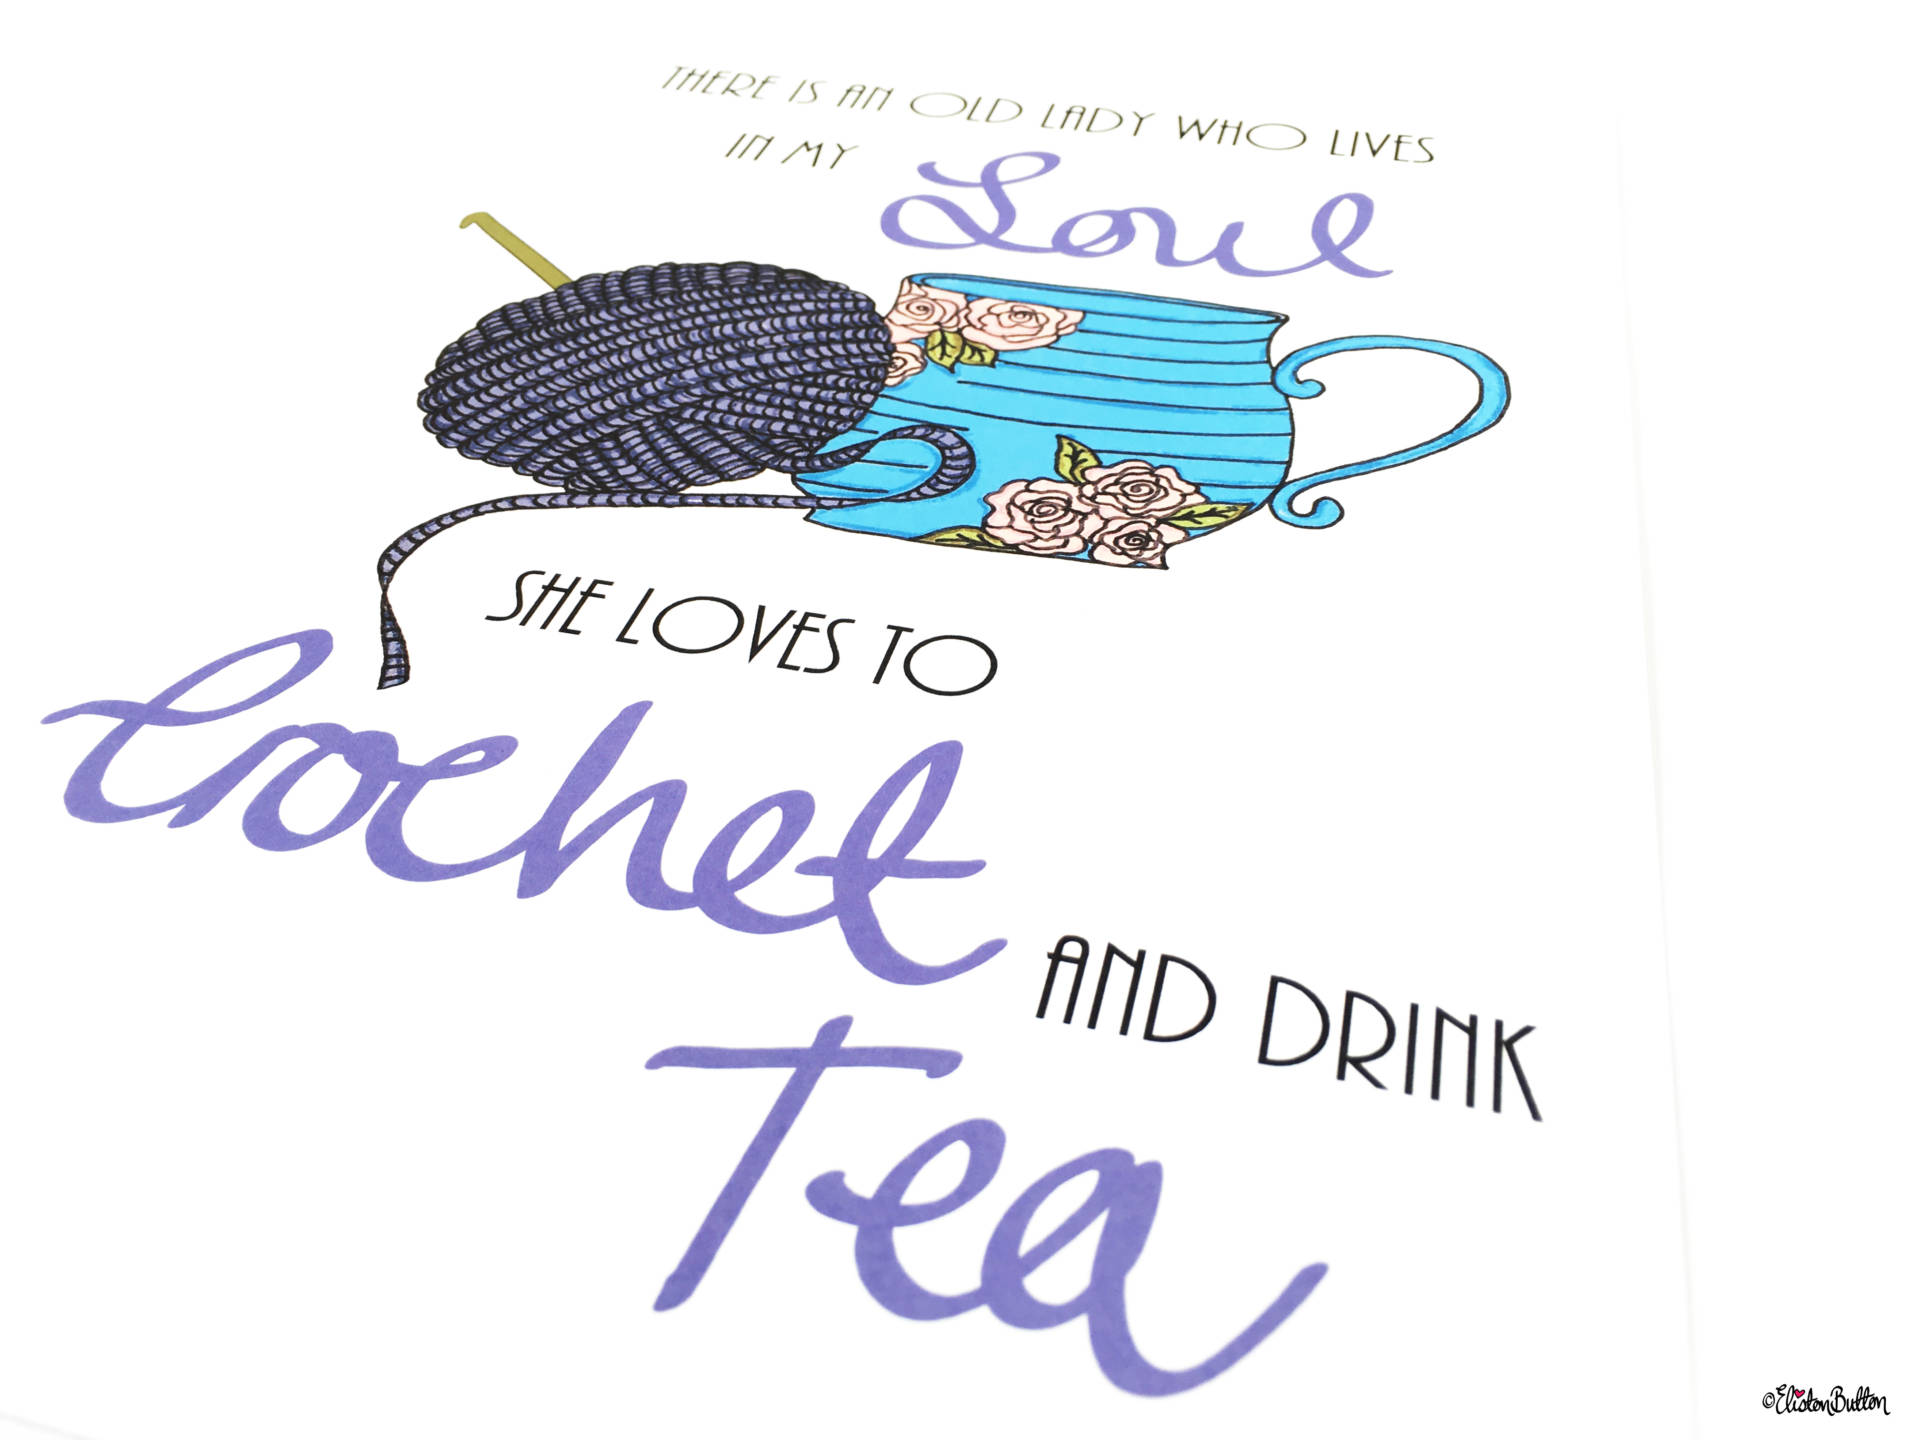 Crochet and Drink Tea Wall Art Print by Eliston Button Close Up - Create 30 – No. 3 & 4 – Crochet Illustrated Quote Prints at www.elistonbutton.com - Eliston Button - That Crafty Kid – Art, Design, Craft & Adventure.